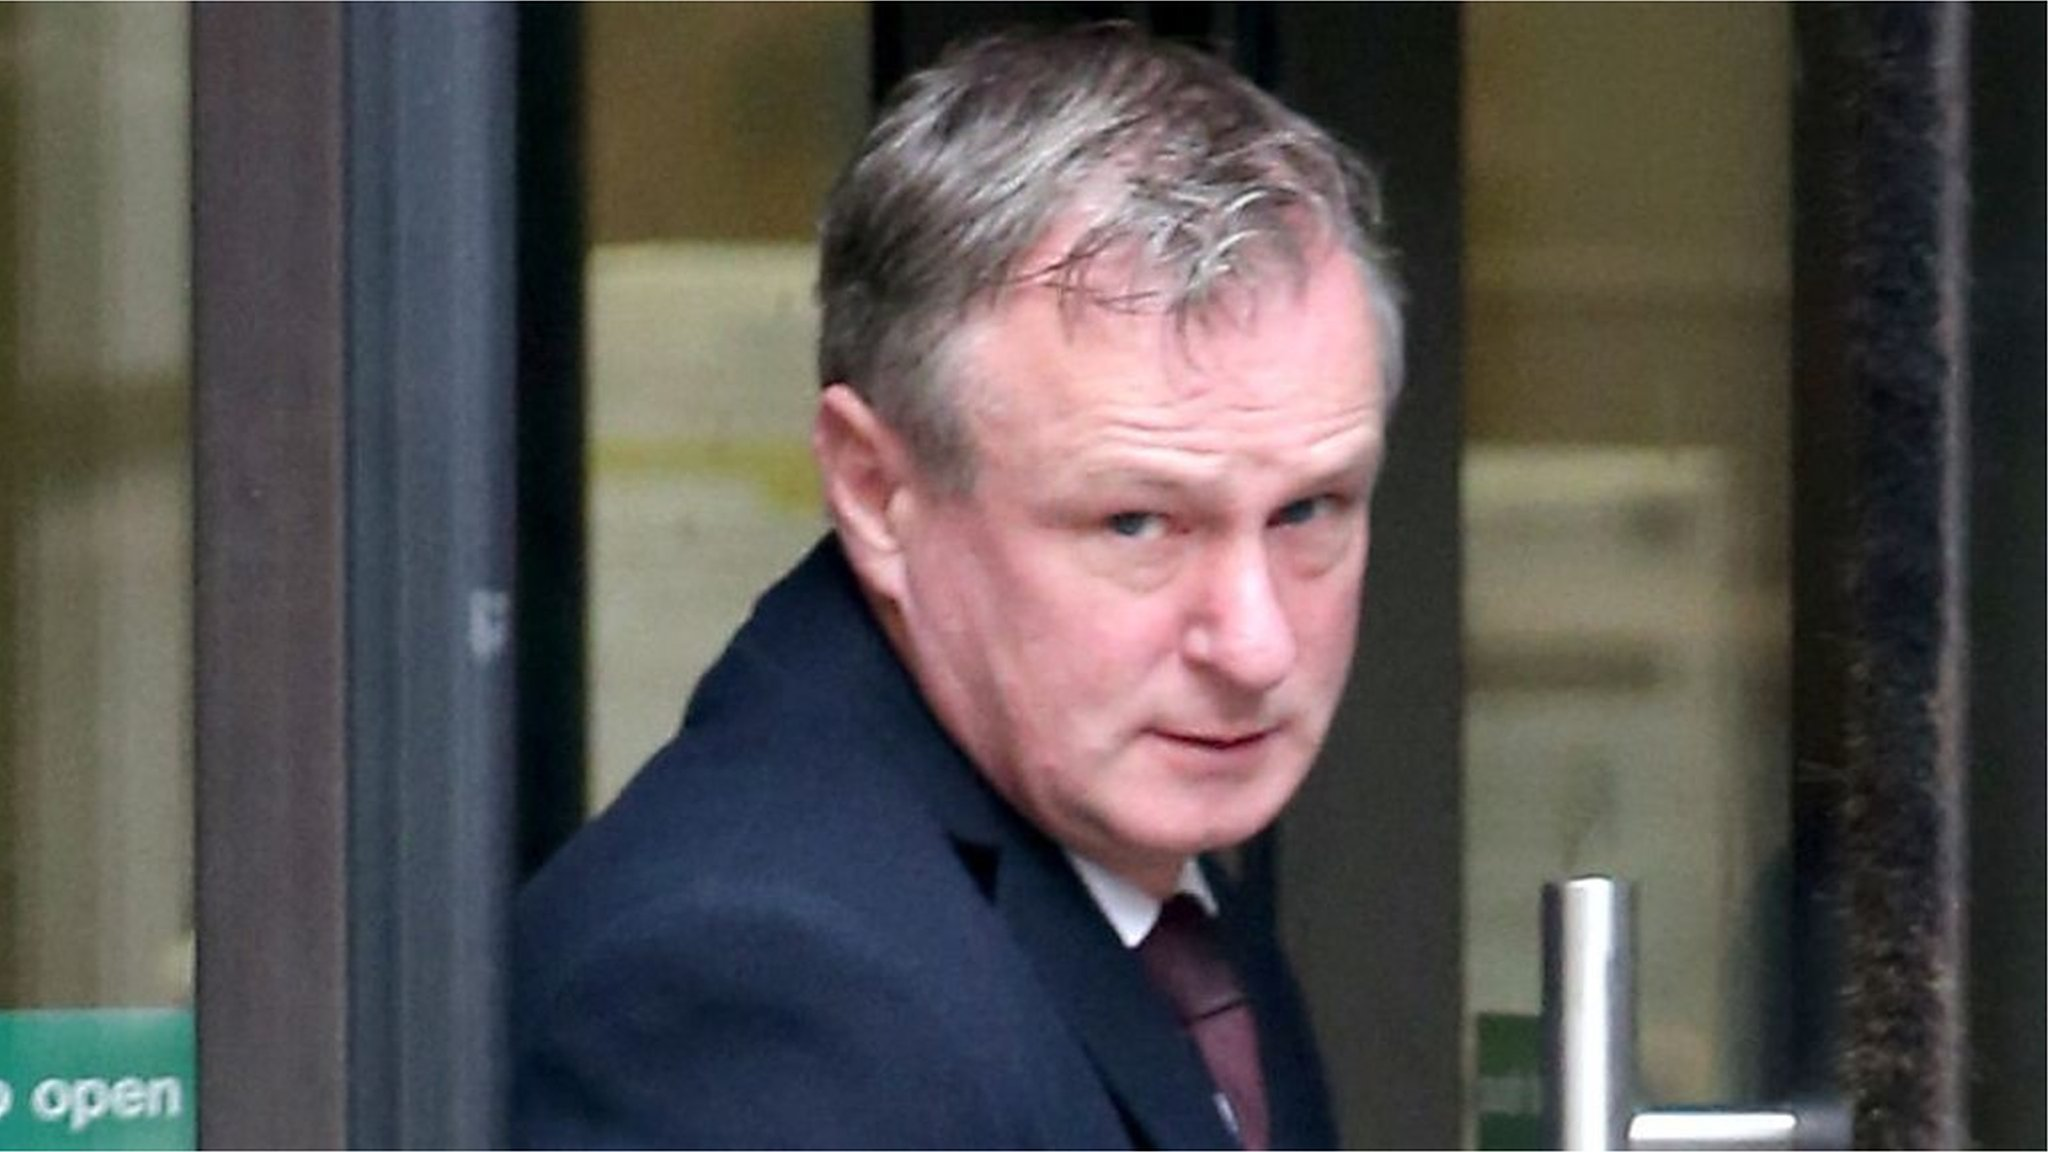 Northern Ireland football boss Michael O'Neill handed drink-driving ban and fine